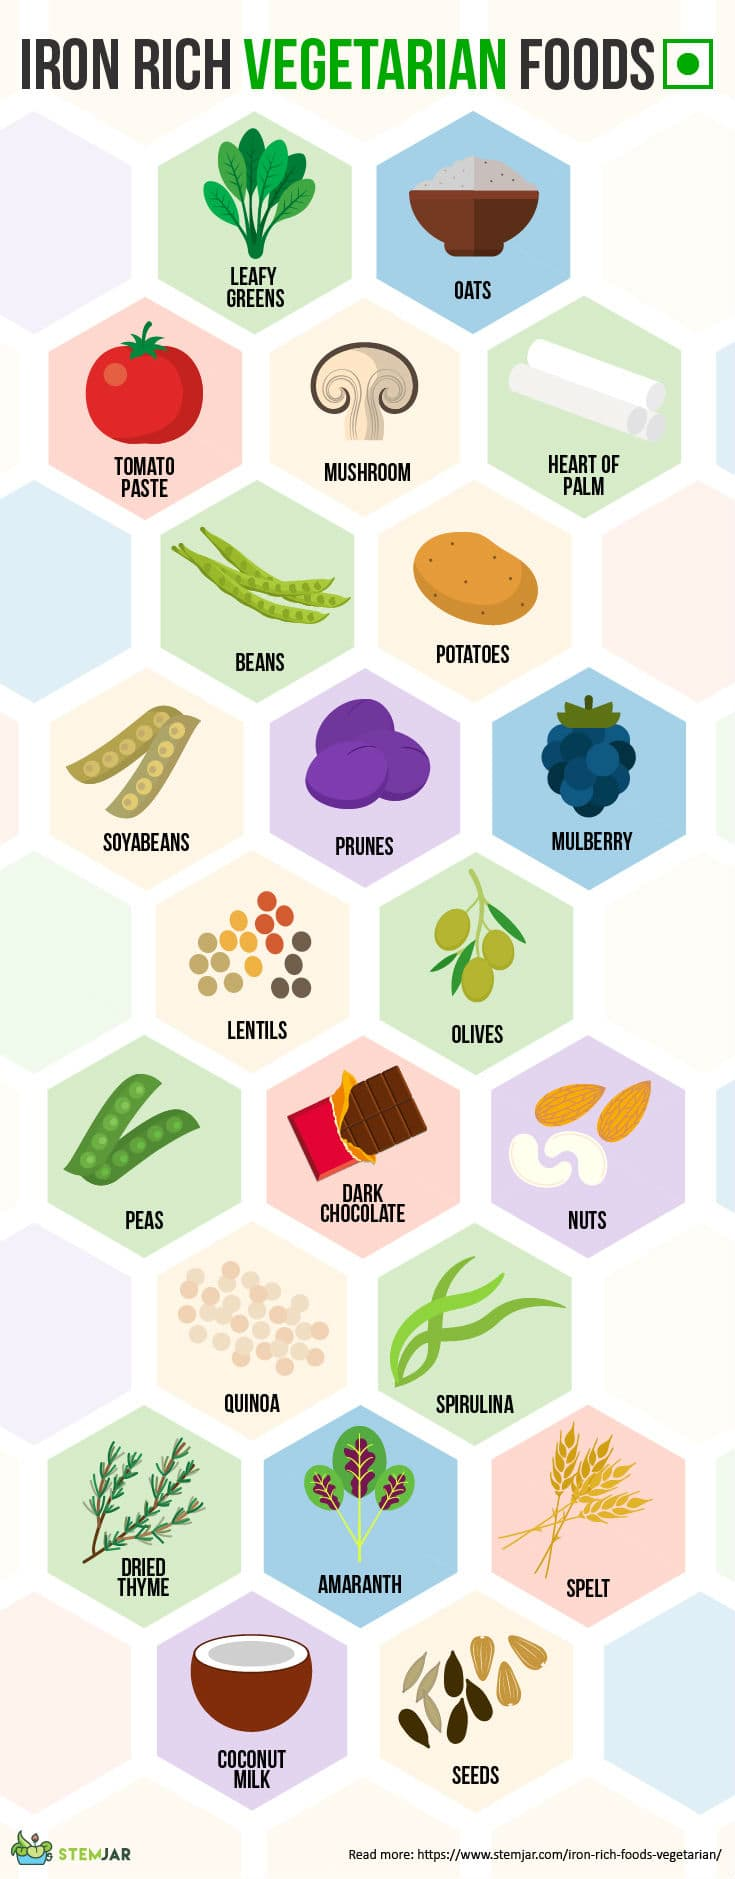 Iron rich vegetarian food infographic